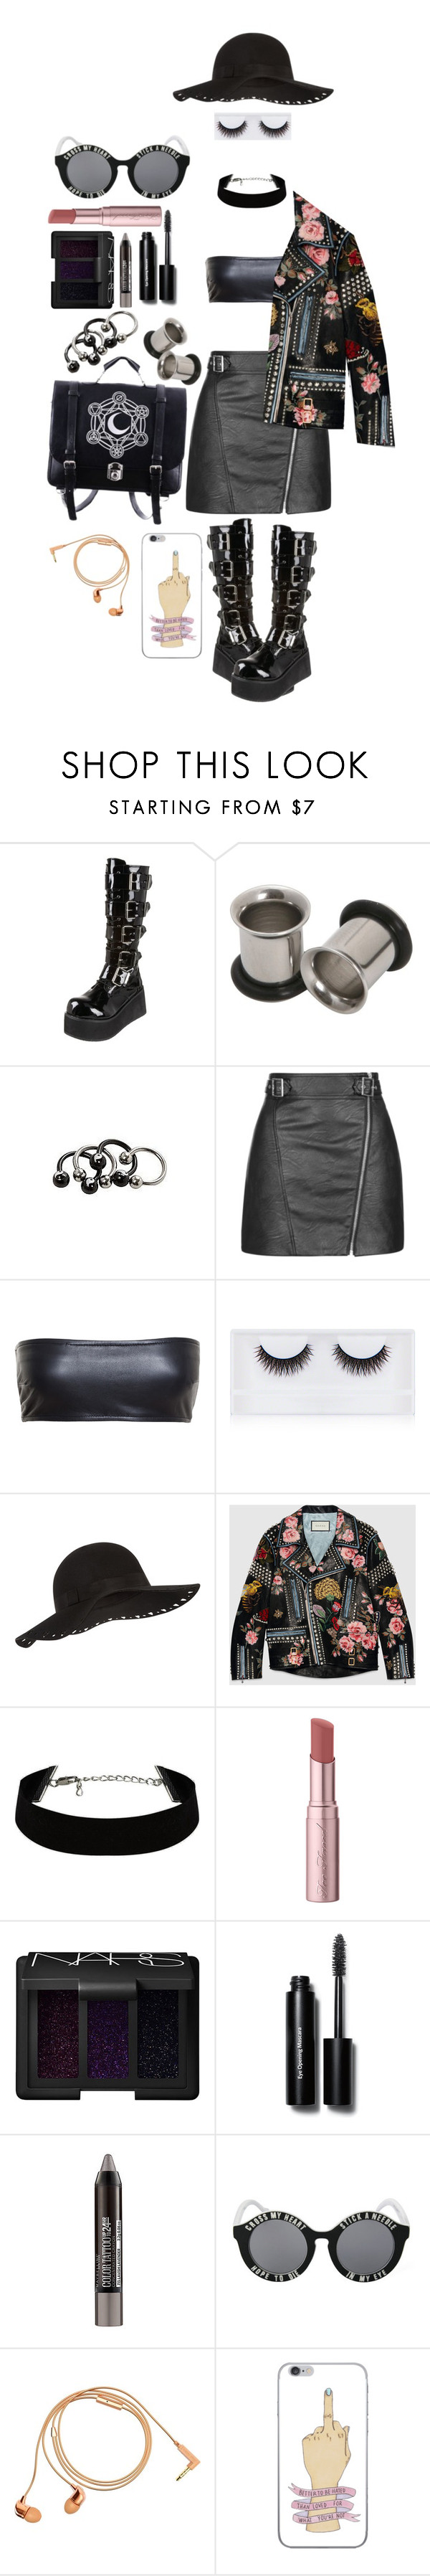 """goth meets fashion 💀💅"" by xkitten-pokerx ❤ liked on Polyvore featuring Pleaser, Topshop, Love Leather, Georgie Beauty, Accessorize, Gucci, Too Faced Cosmetics, NARS Cosmetics, Bobbi Brown Cosmetics and Maybelline"